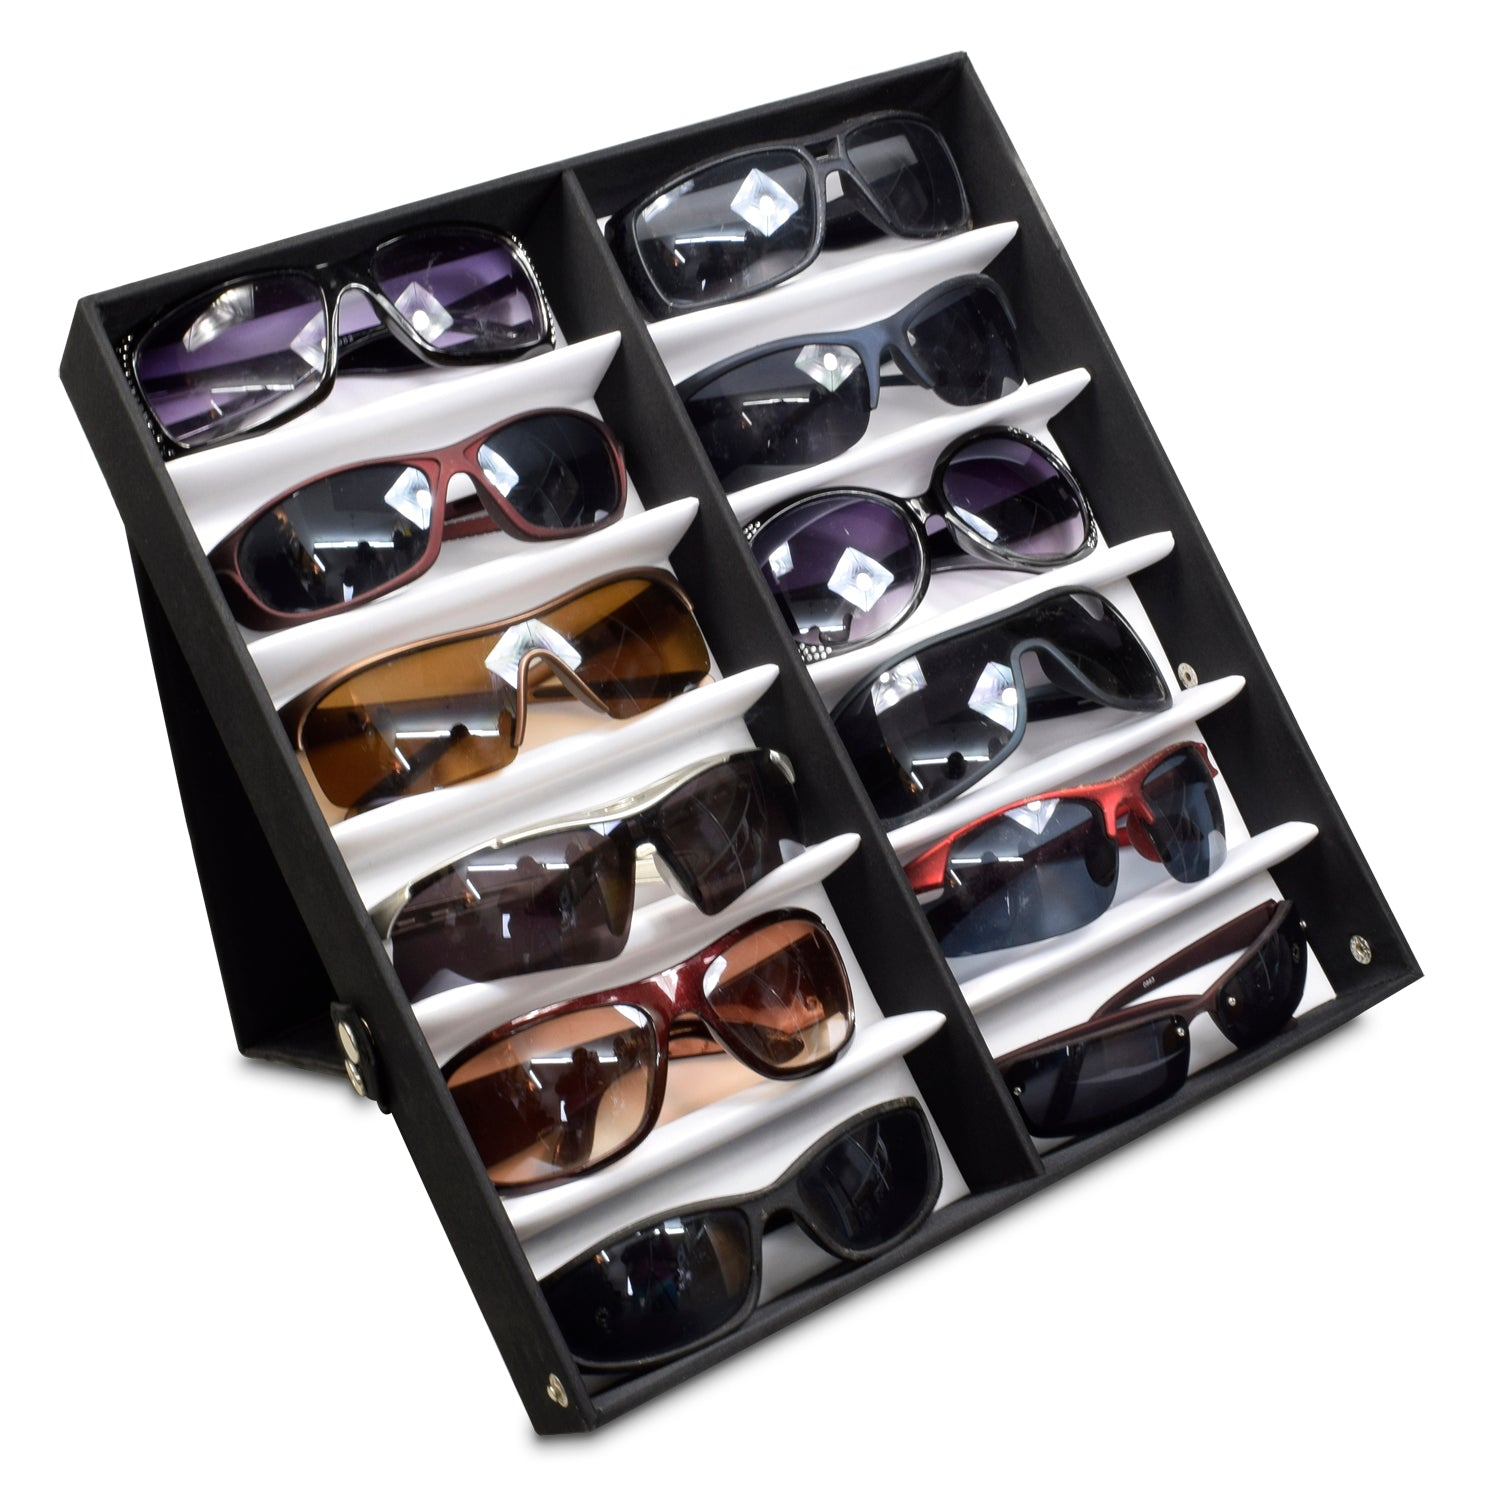 #TR-34VFL Eyewear Storage And Display Case,Fabric Covered, Lightweight